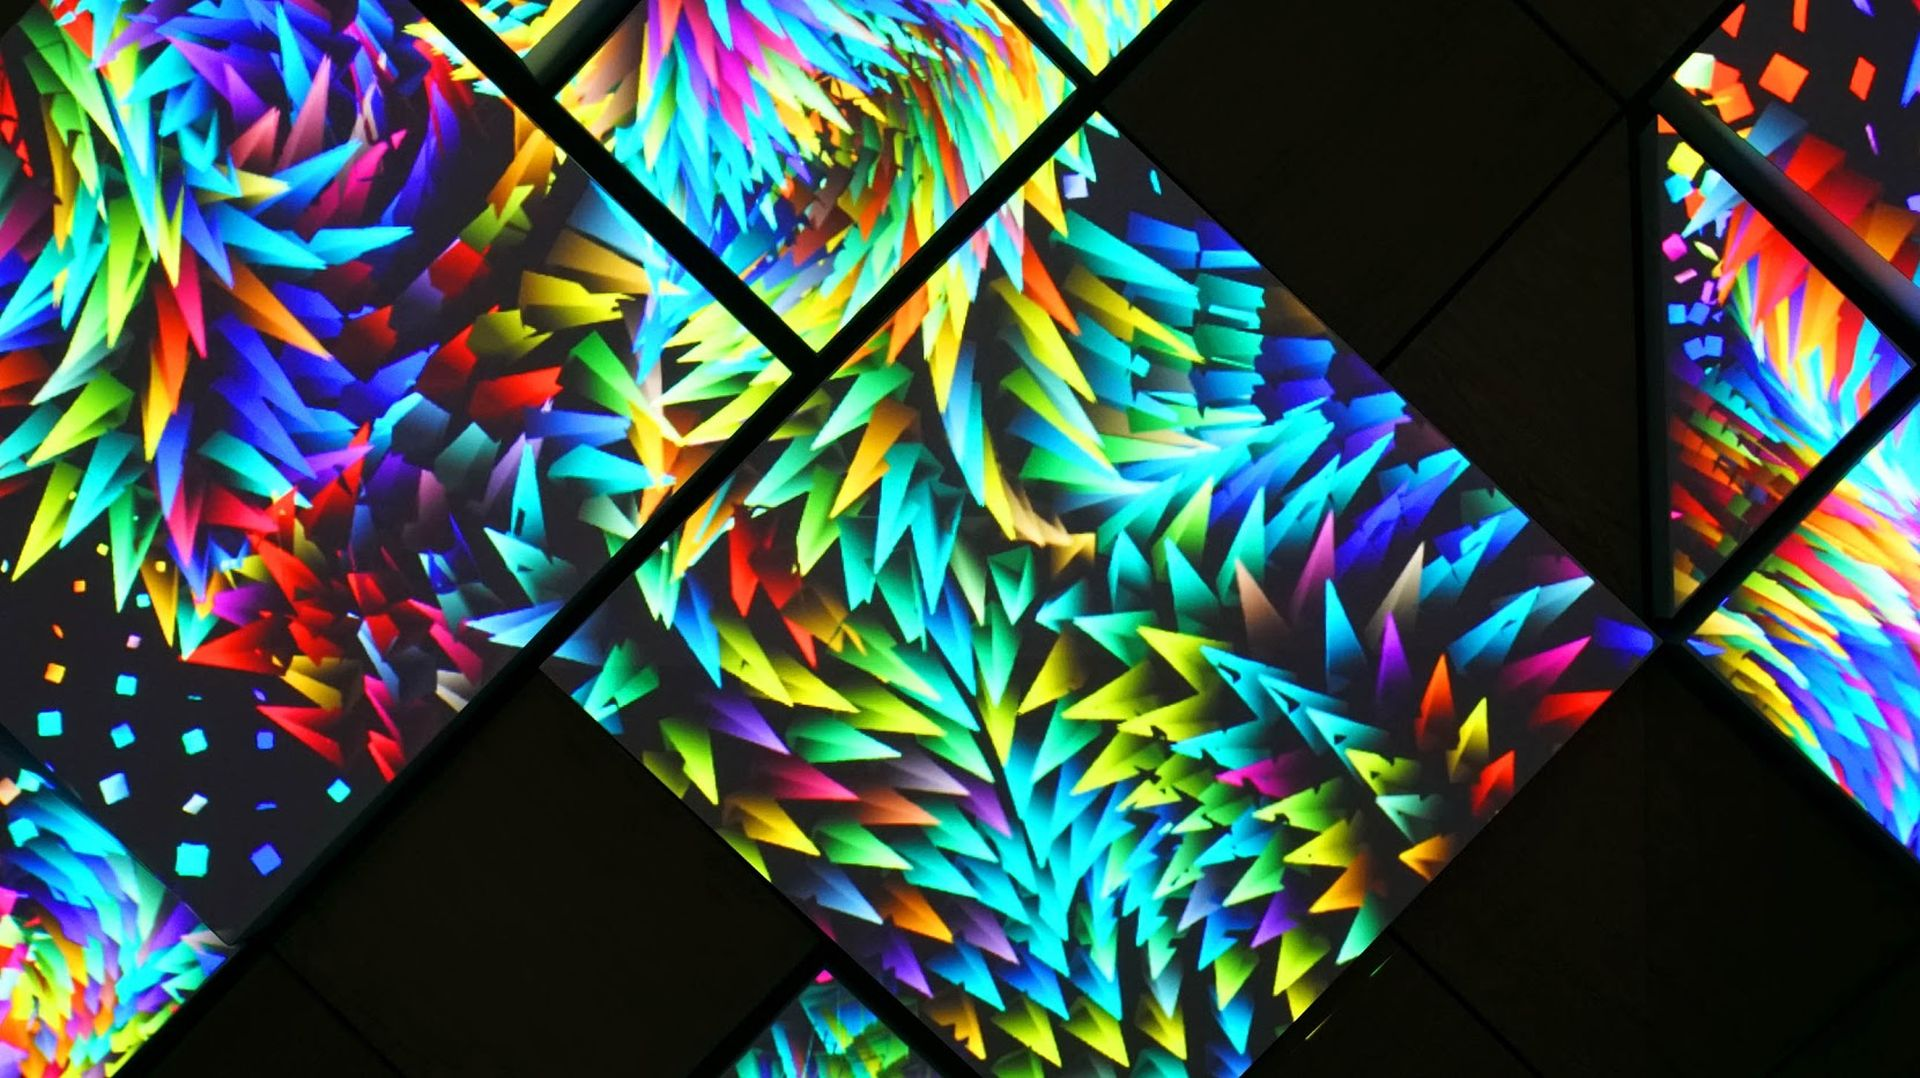 volxoxlabsmicrosoftlounge_projectionmapping_5_1920.jpg